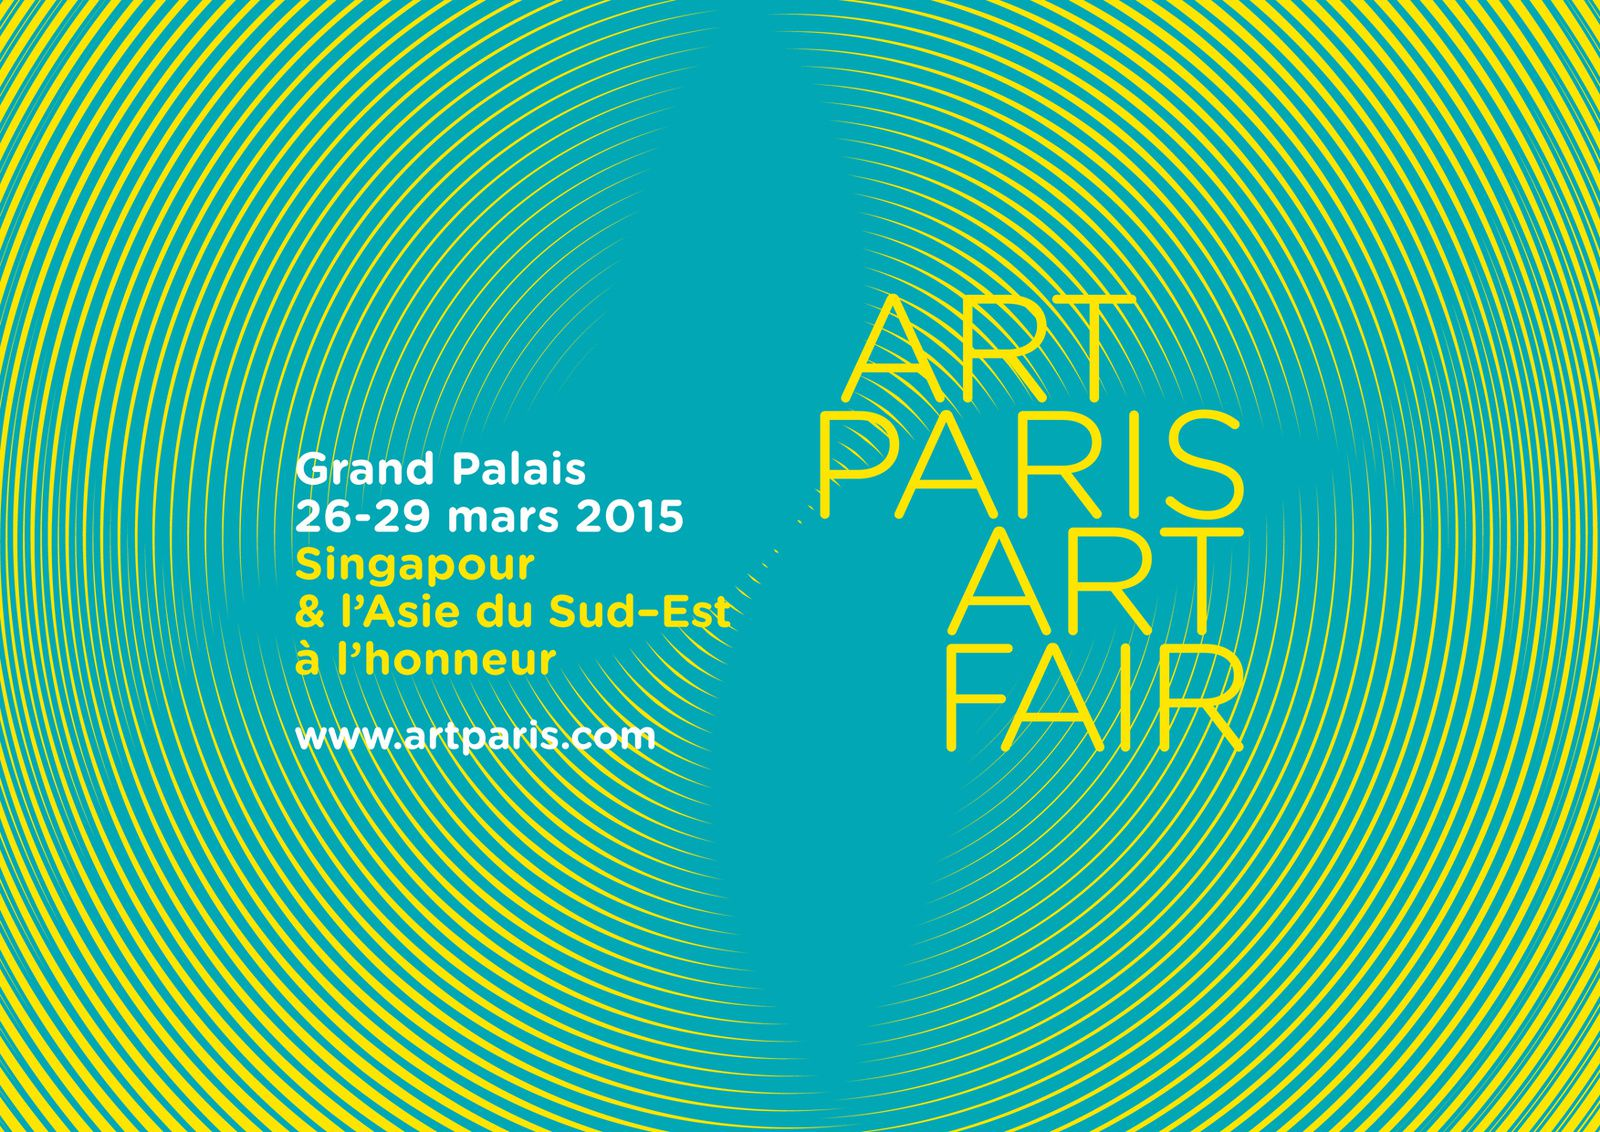 Prochaine exposition : Art Paris Art Fair 2015